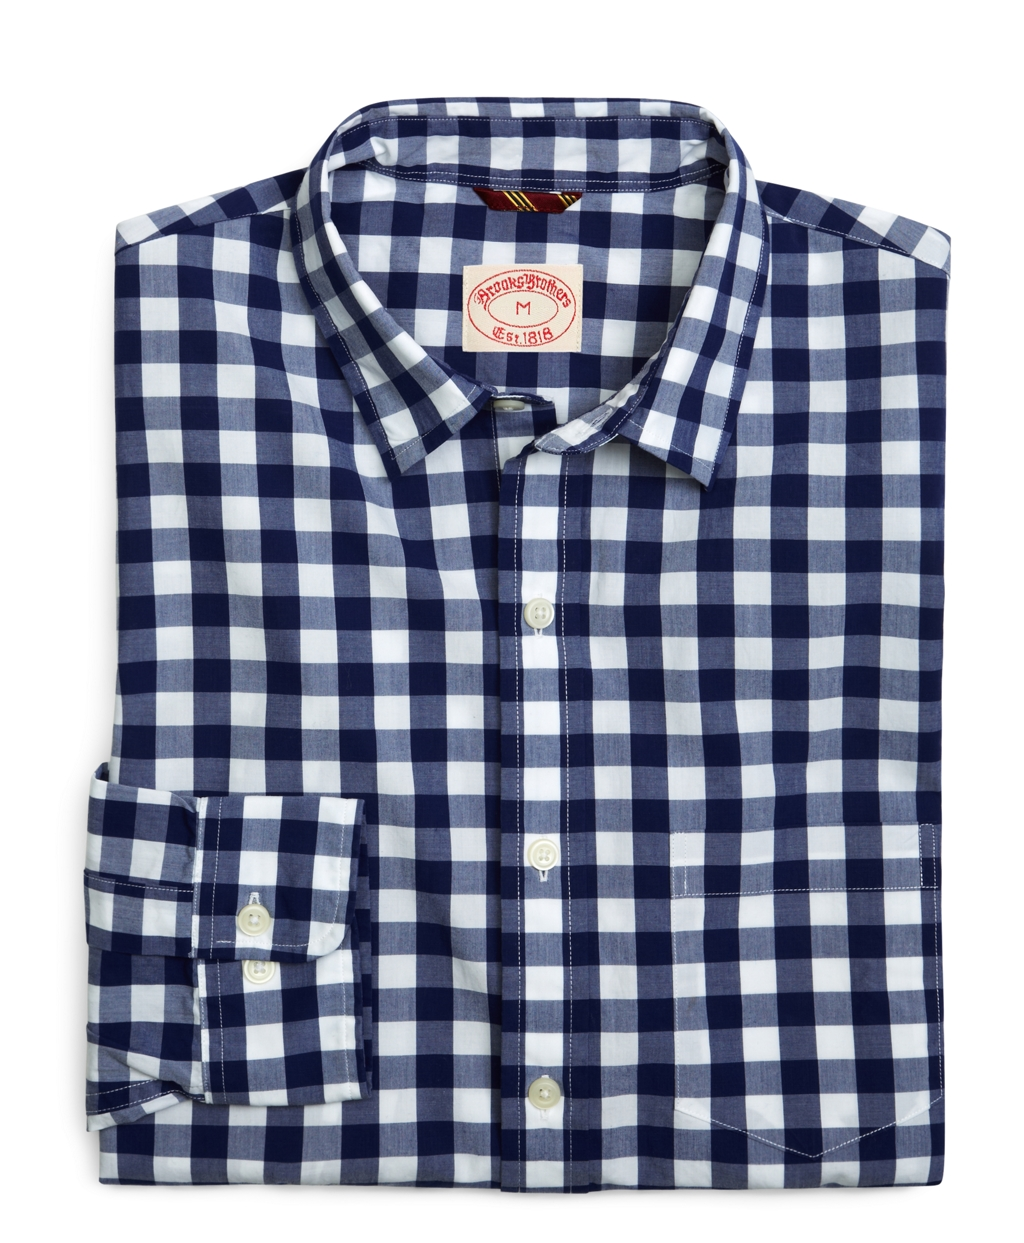 Lyst brooks brothers poplin navy large gingham sport for Navy blue gingham shirt